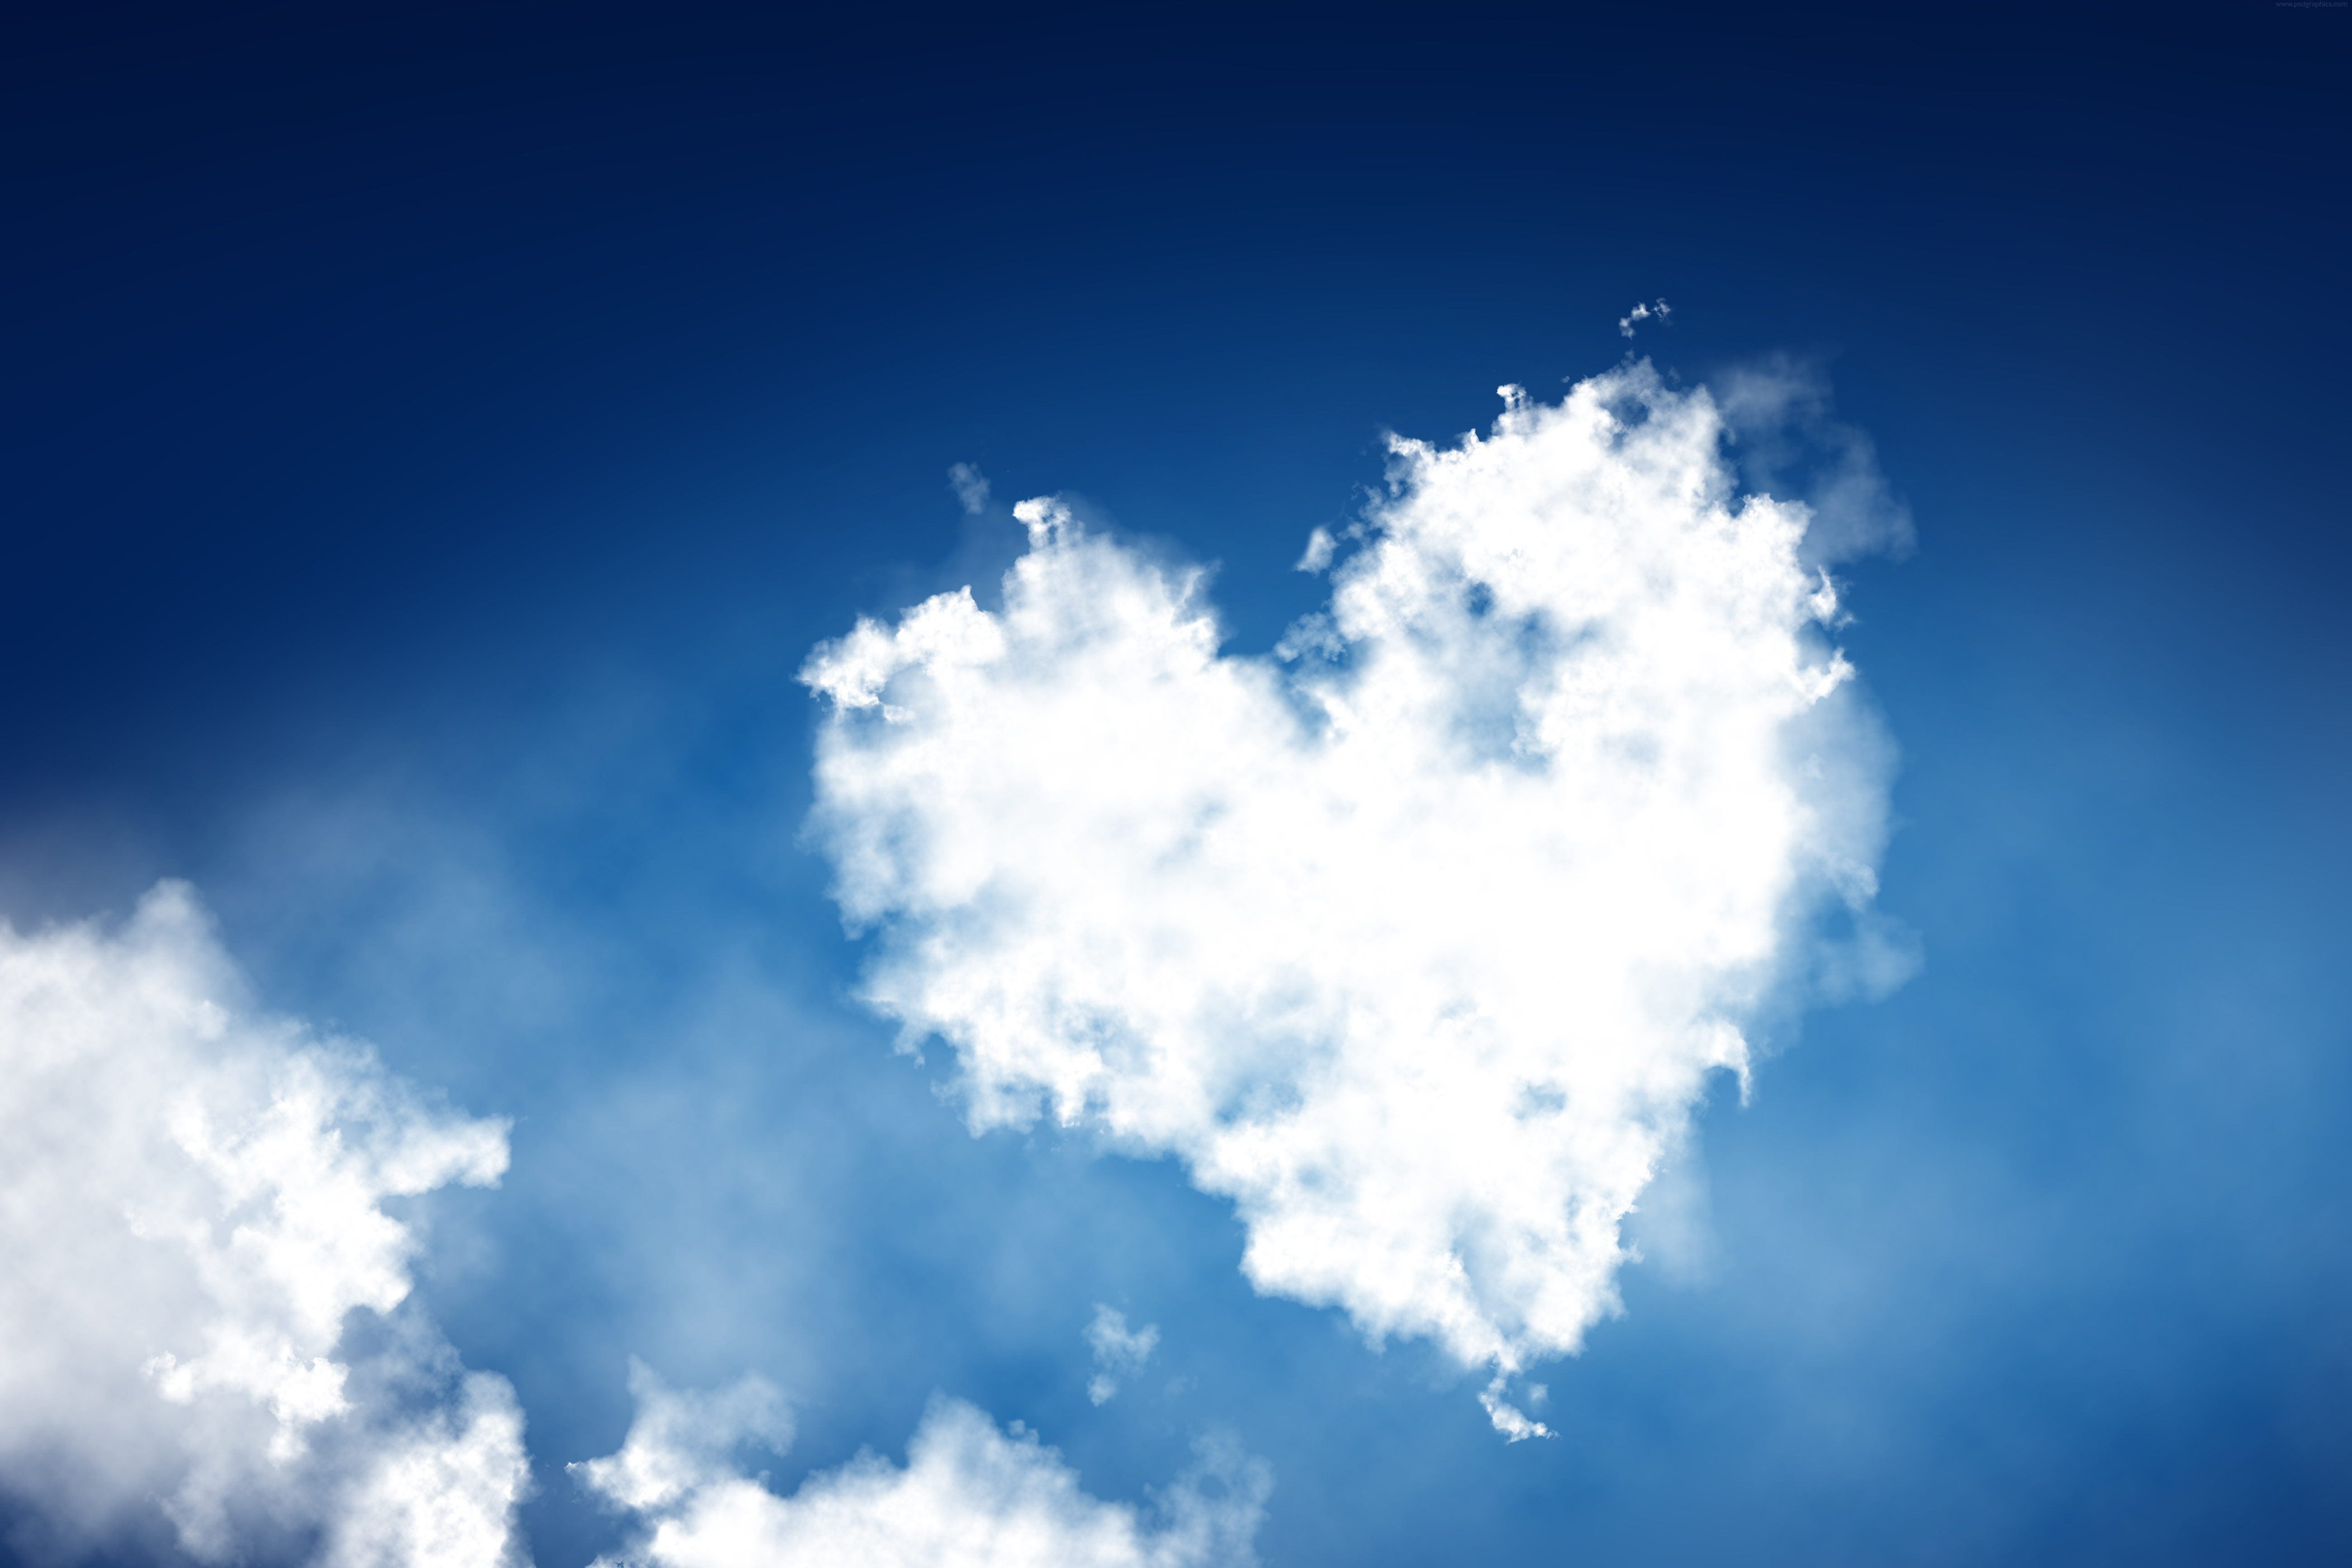 Heart shaped clouds background wallpaper #1984